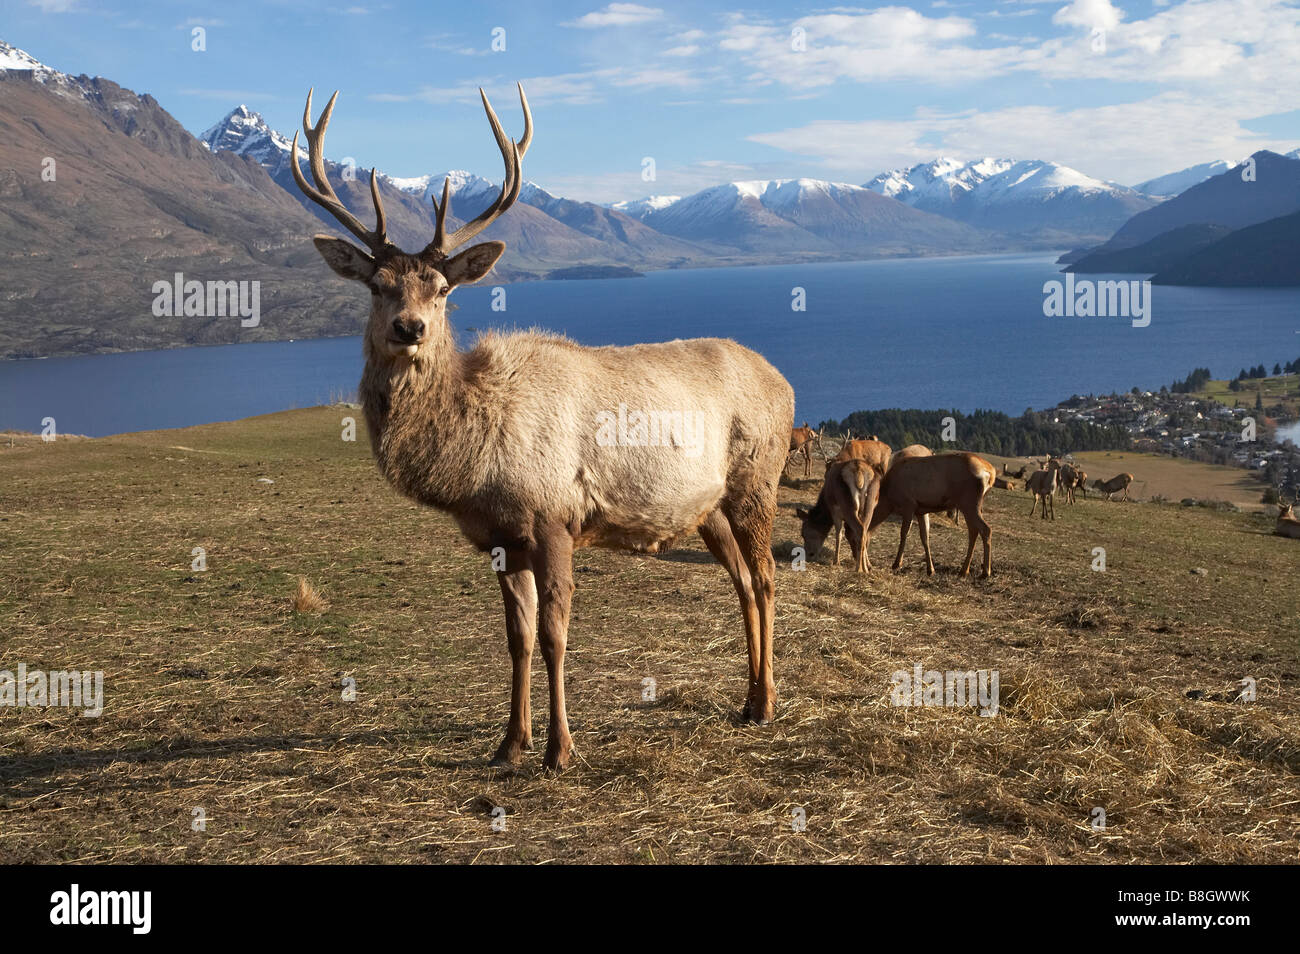 Red Deer Cervus elaphus Deer Park Heights Queenstown South Island New Zealand - Stock Image